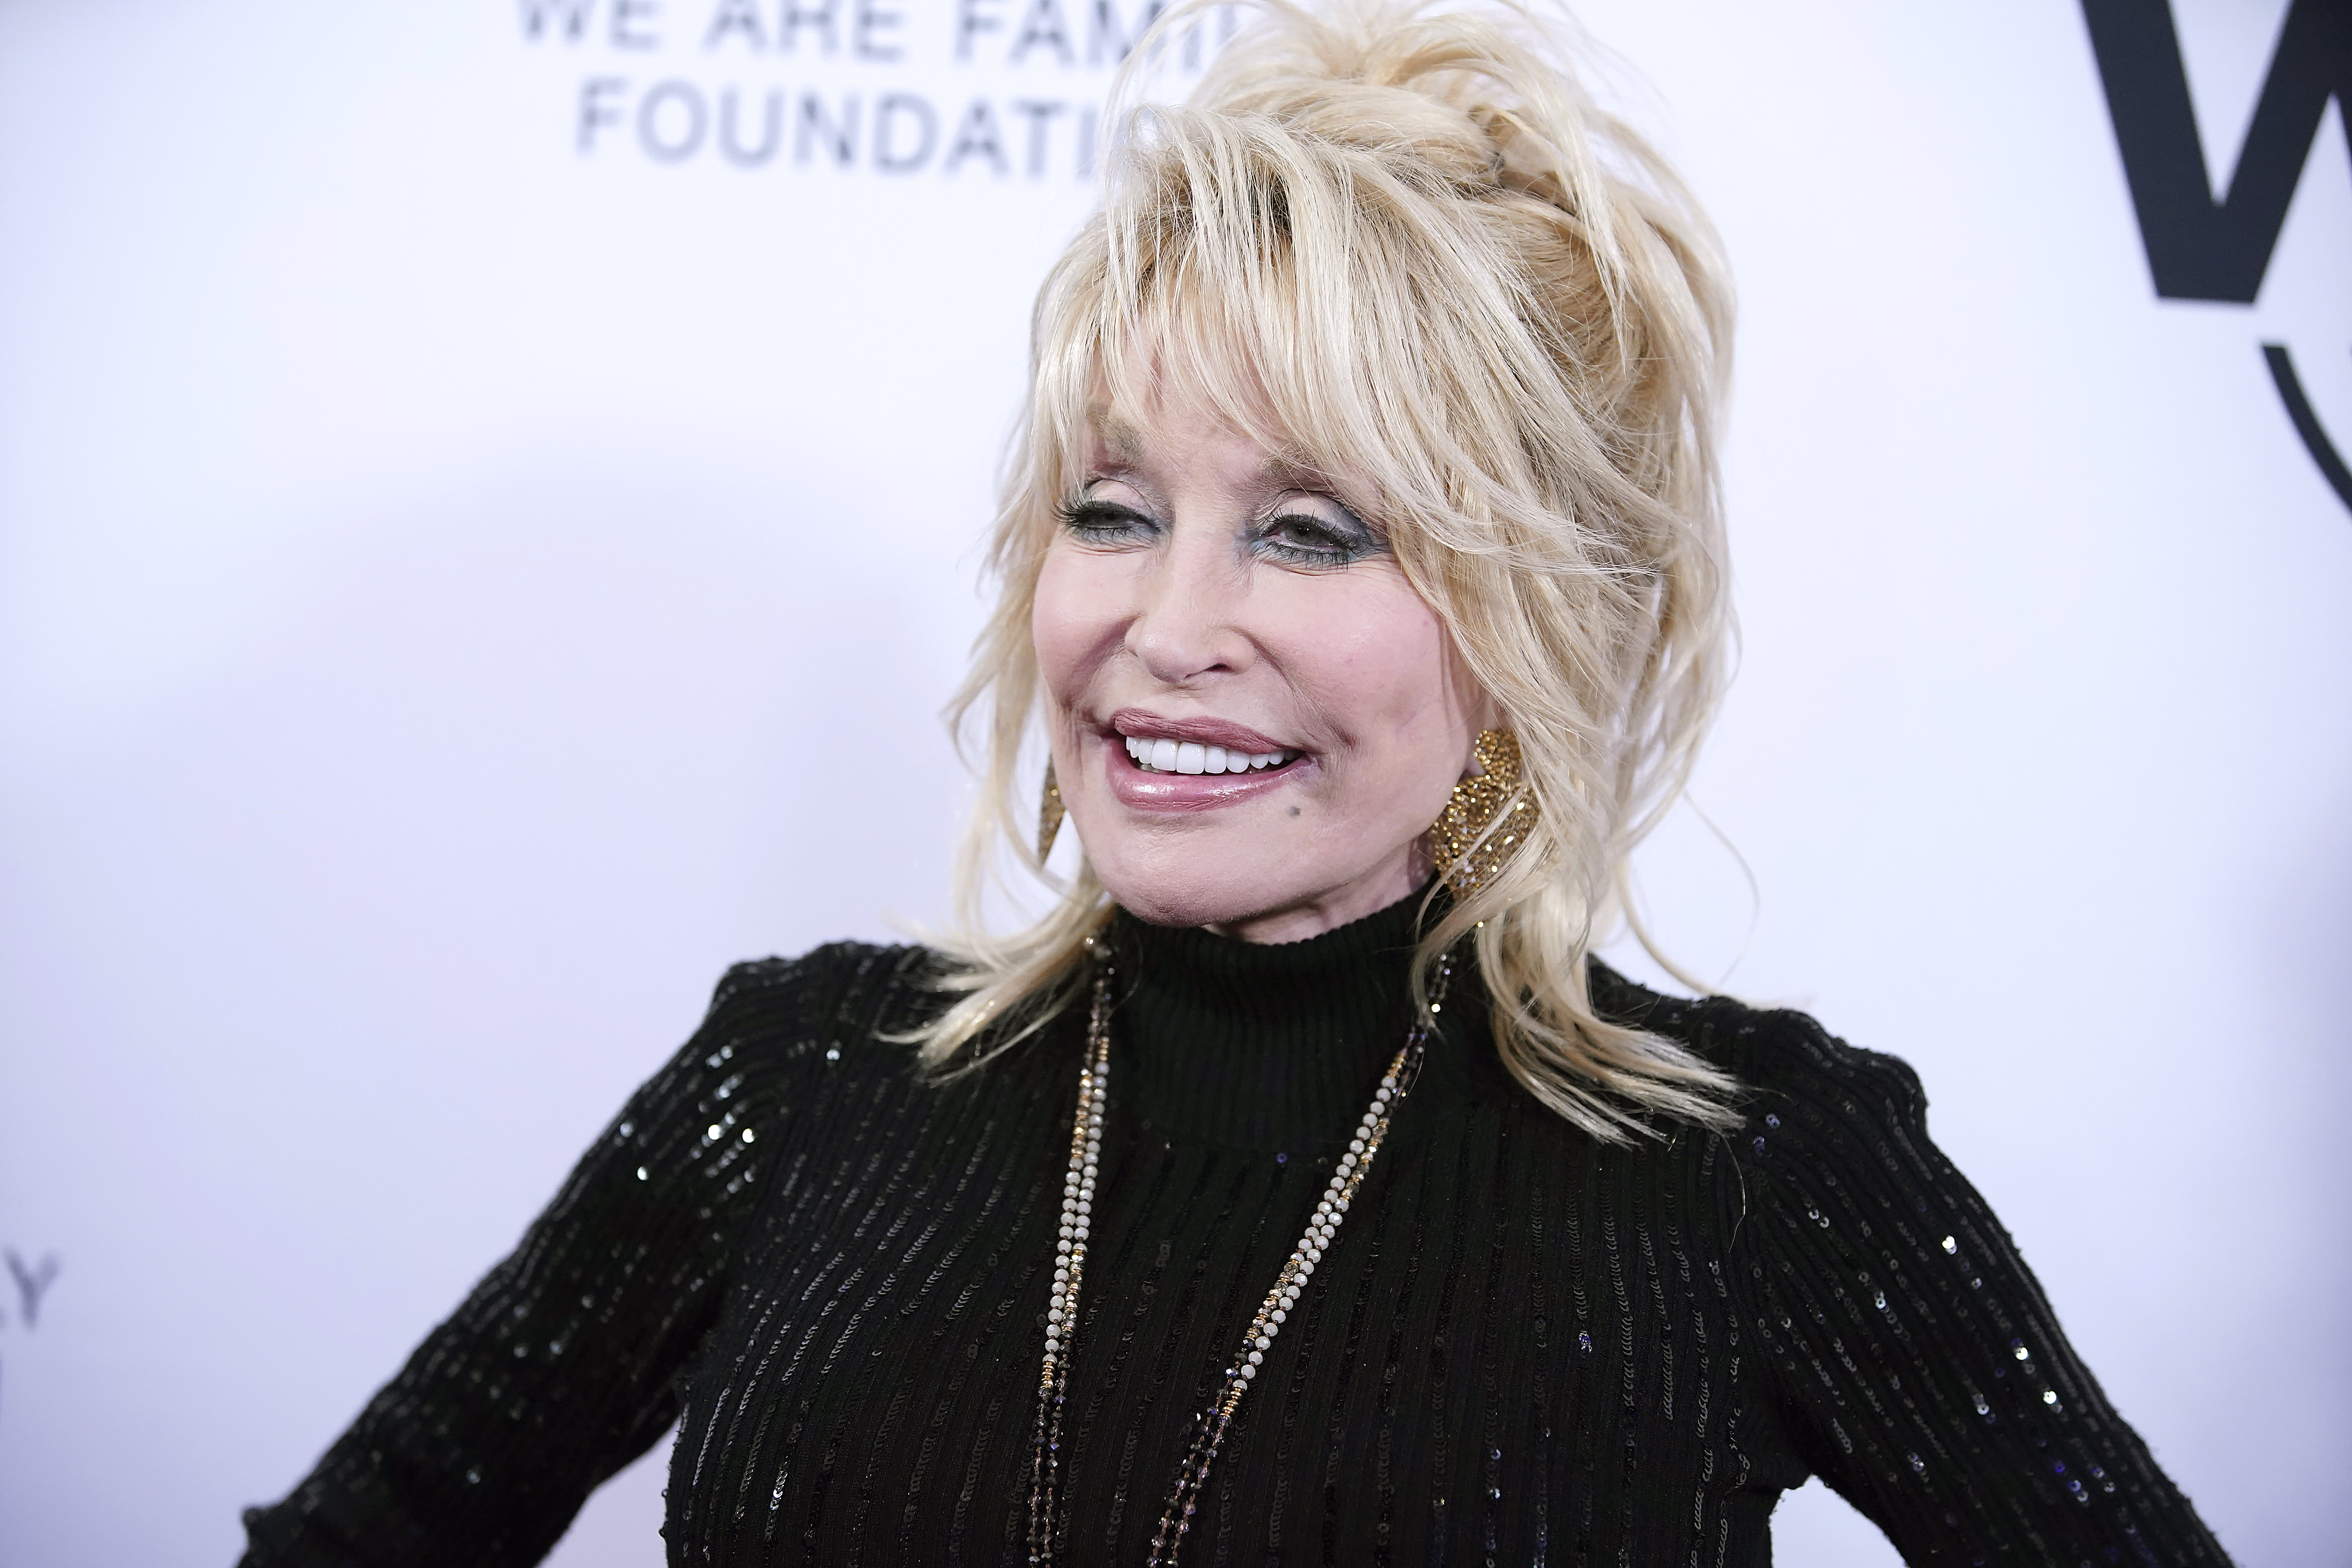 Dolly Parton: 'I count my blessings...but I need to count my money too'